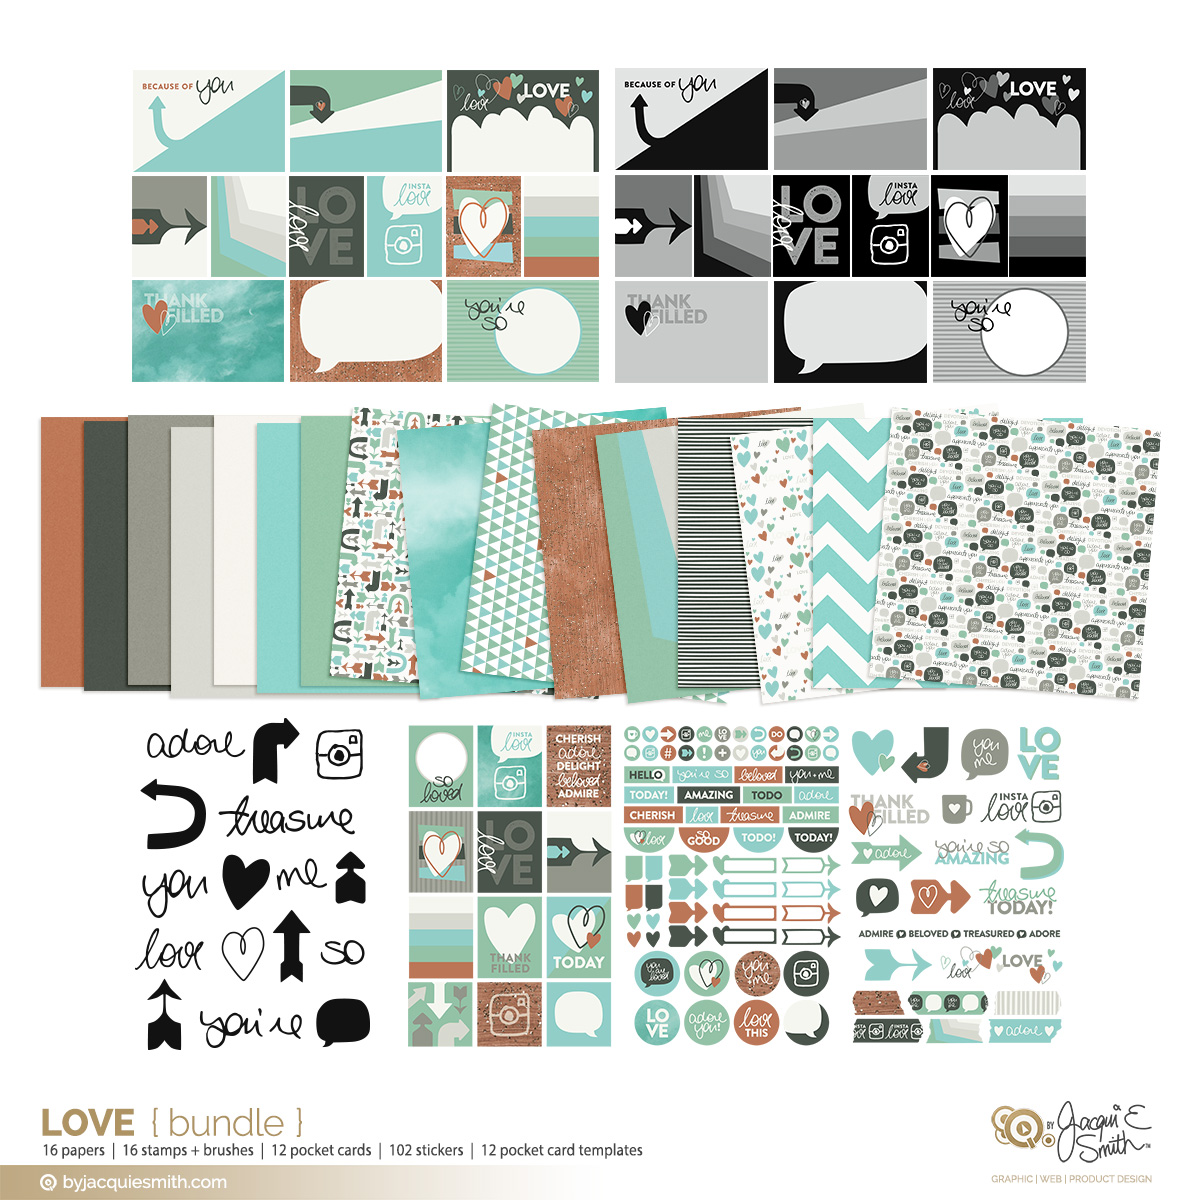 Love digi craft products - bundled for great value at byjacquiesmith.com